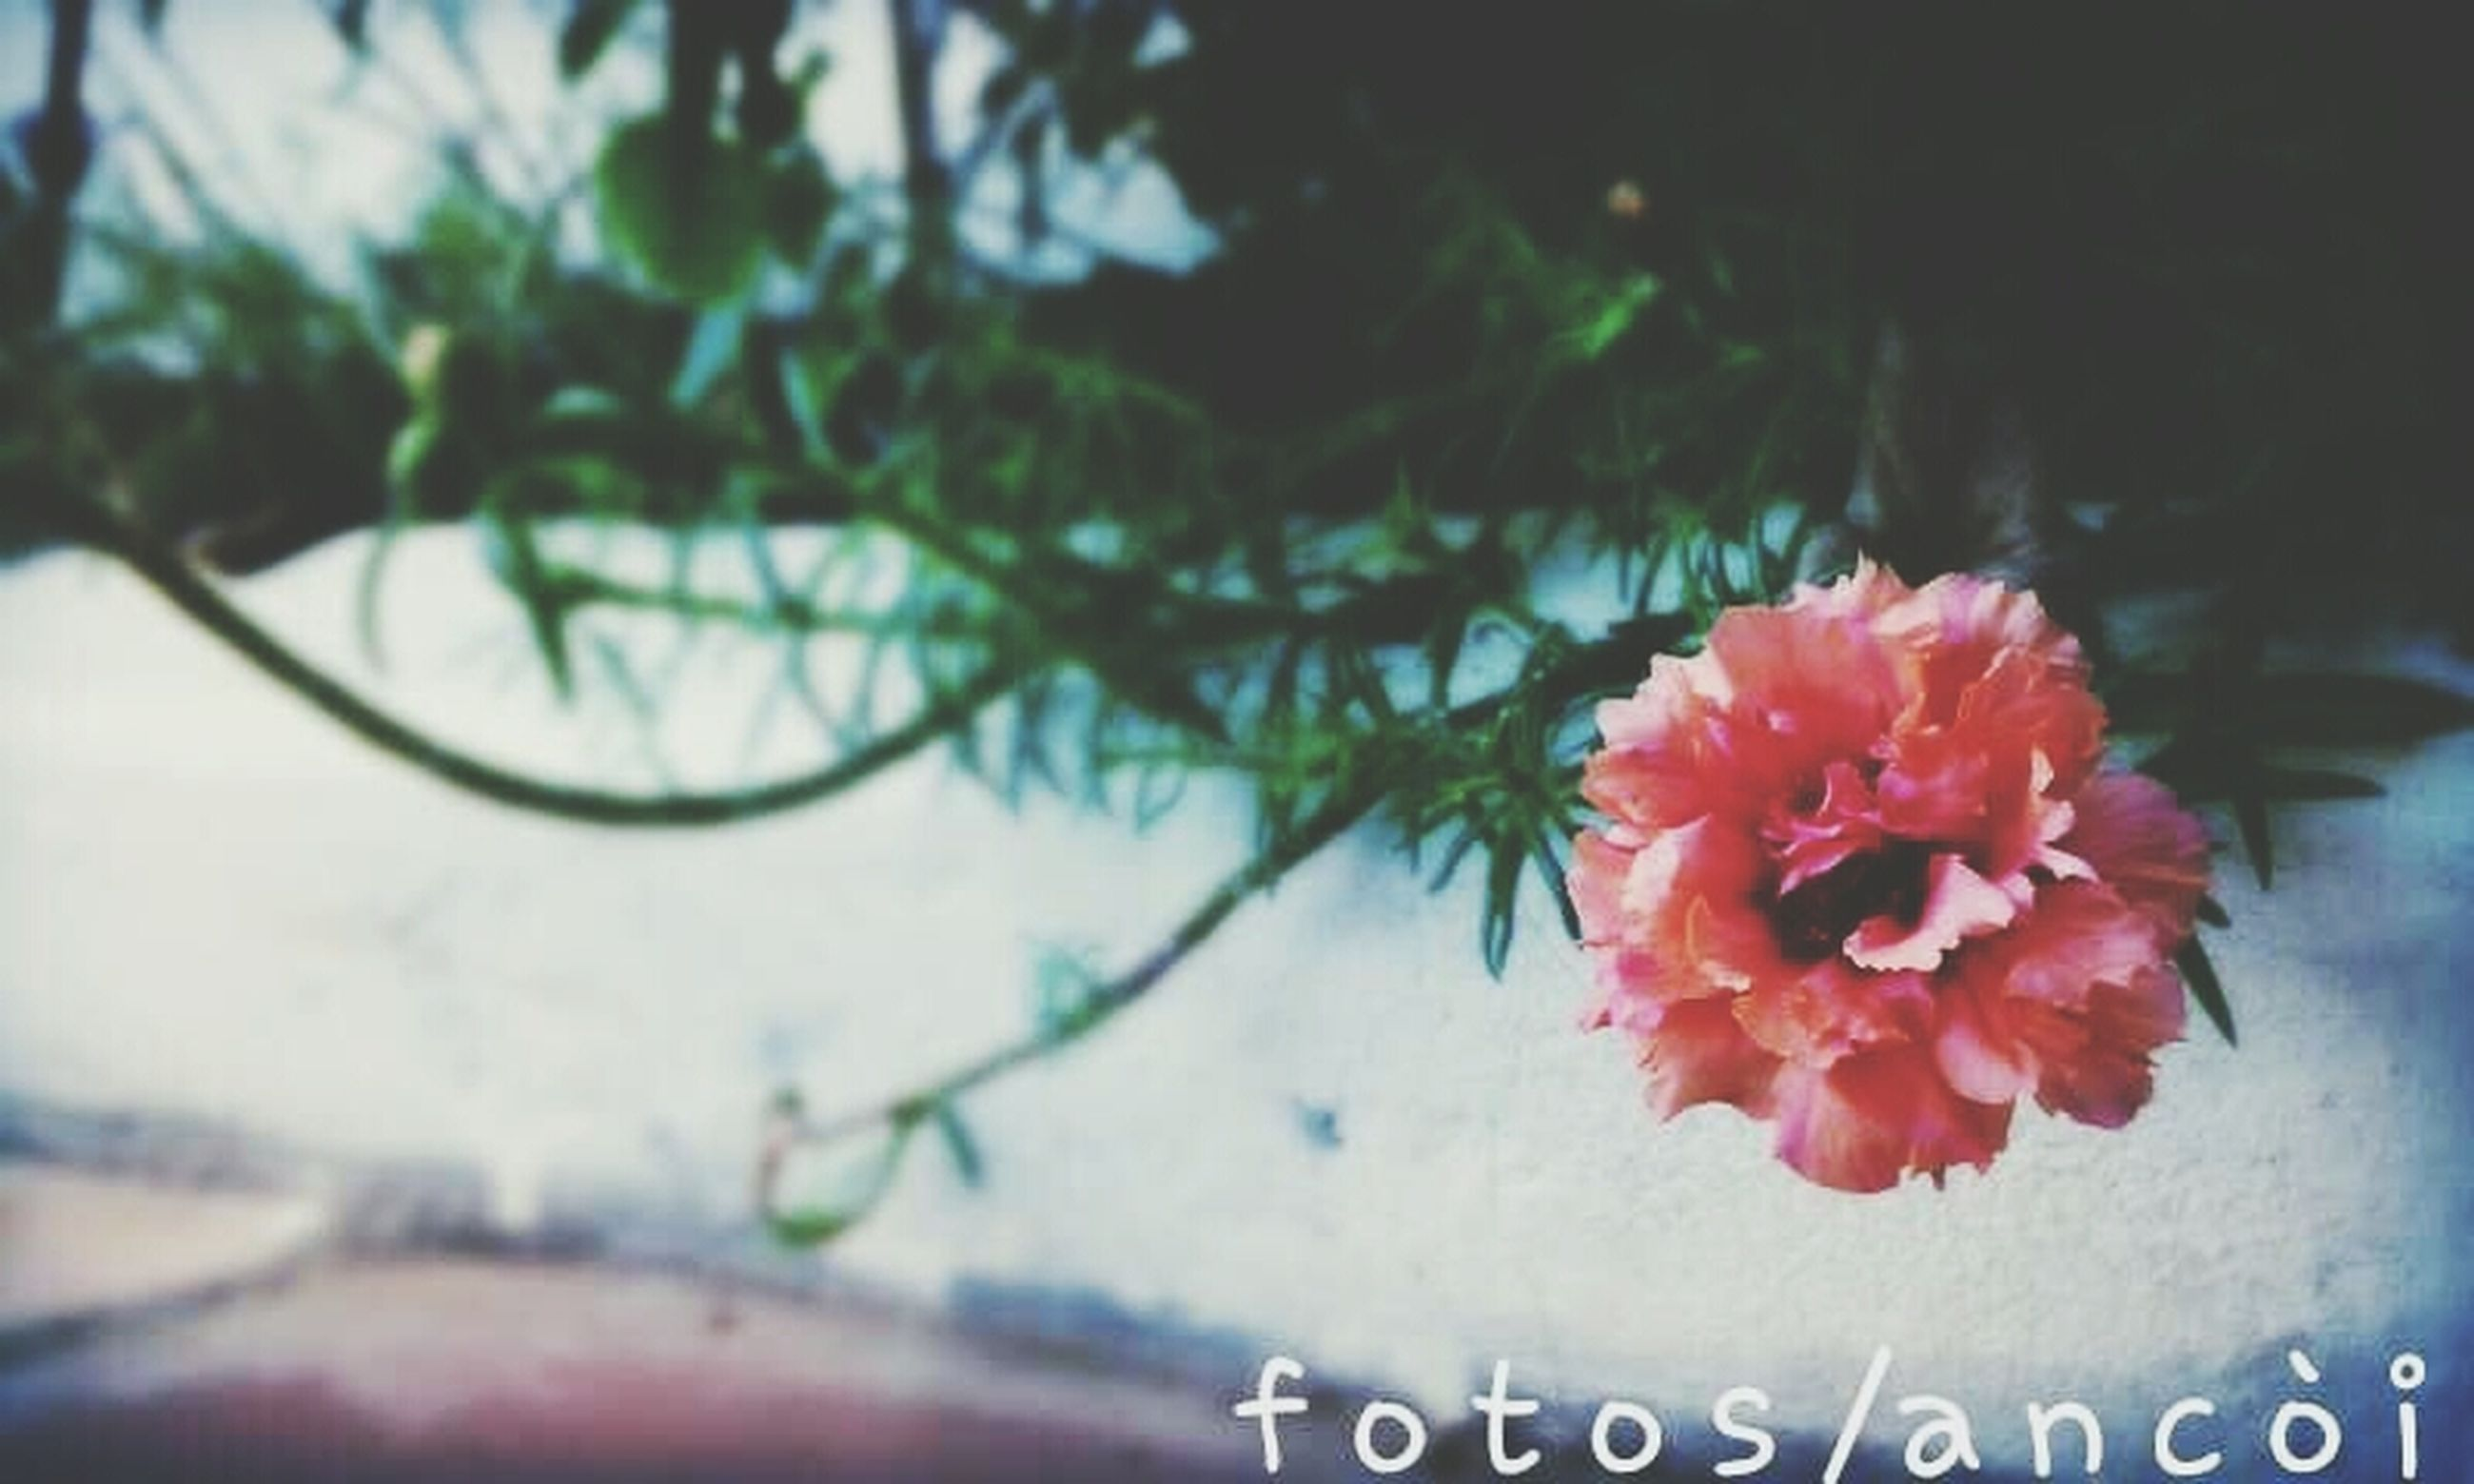 flower, focus on foreground, close-up, tree, text, red, growth, nature, plant, branch, freshness, beauty in nature, day, no people, selective focus, western script, fragility, leaf, outdoors, pink color